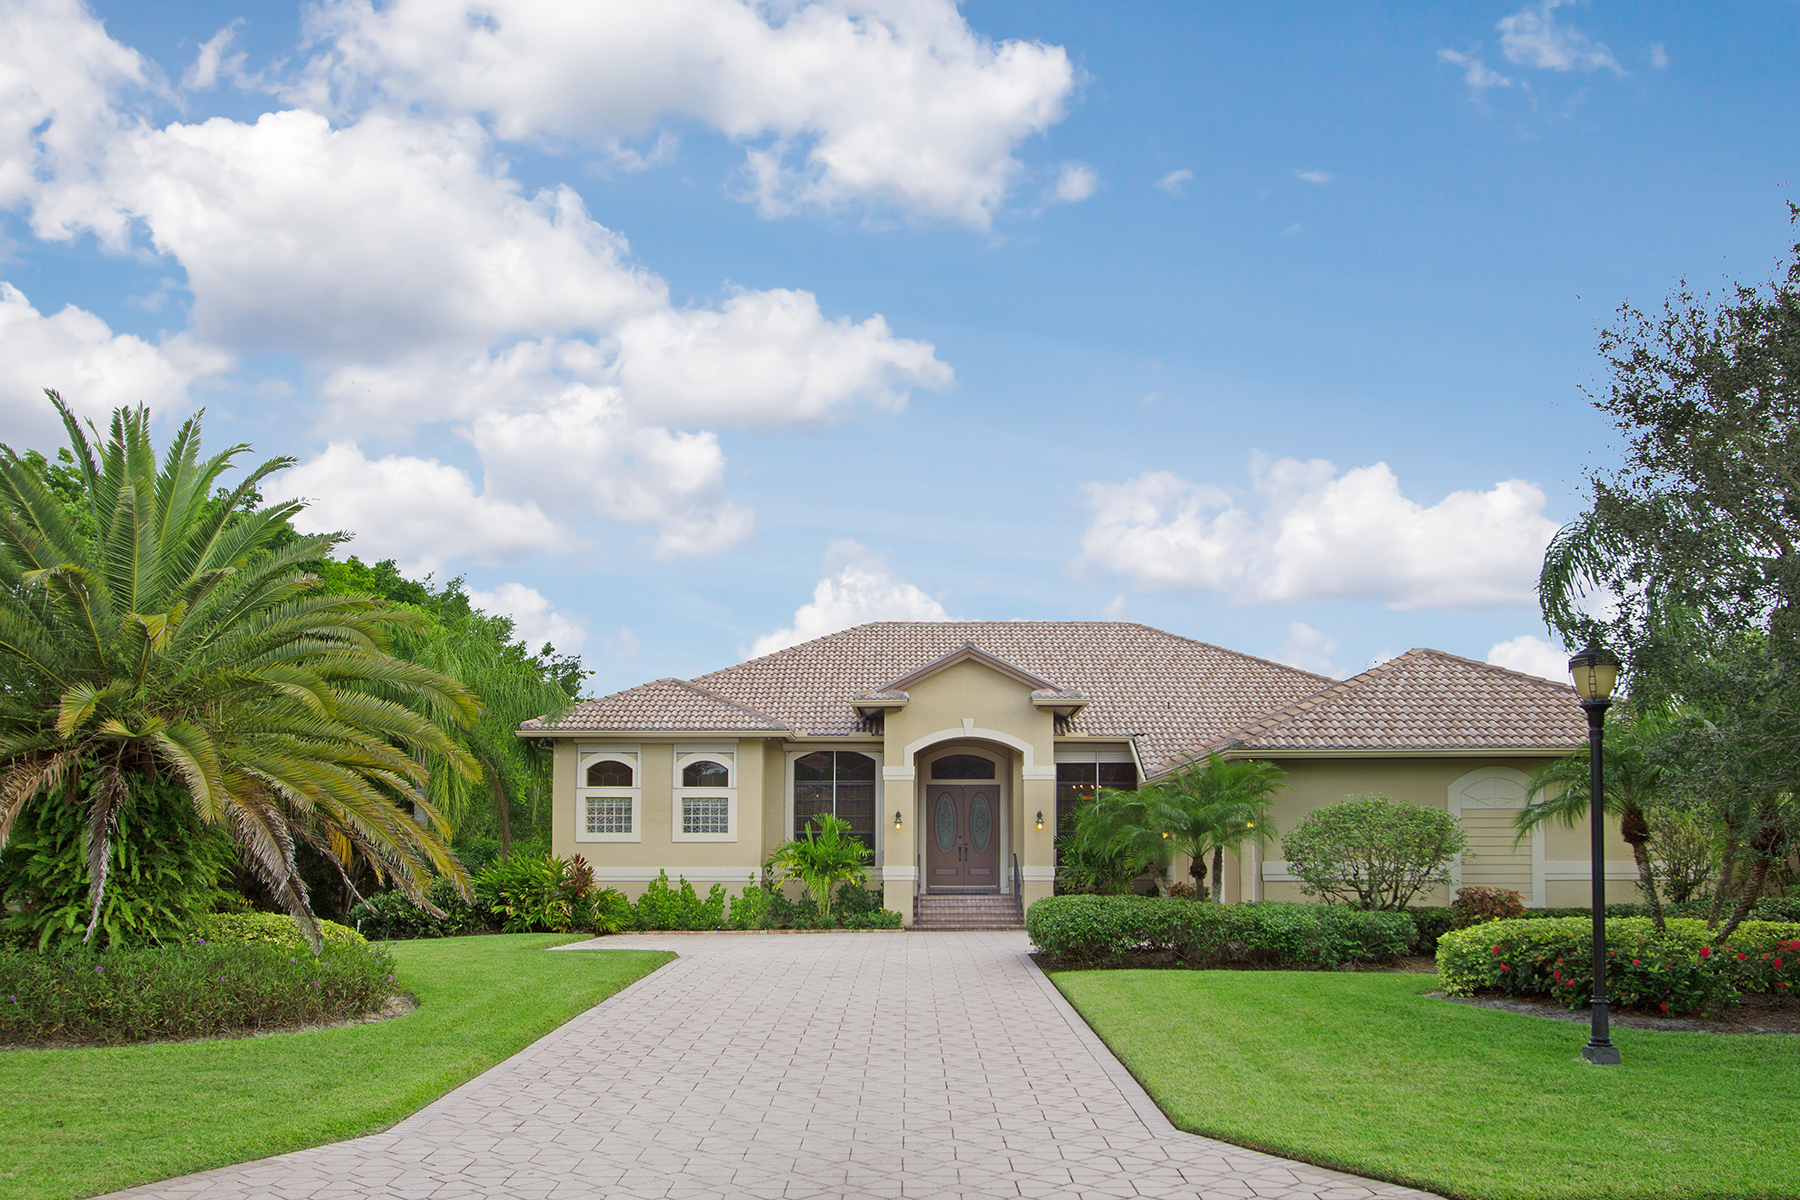 Single Family Home for Sale at DEVONWOOD ESTATES 15541 Old Wedgewood Ct Fort Myers, Florida, 33908 United States